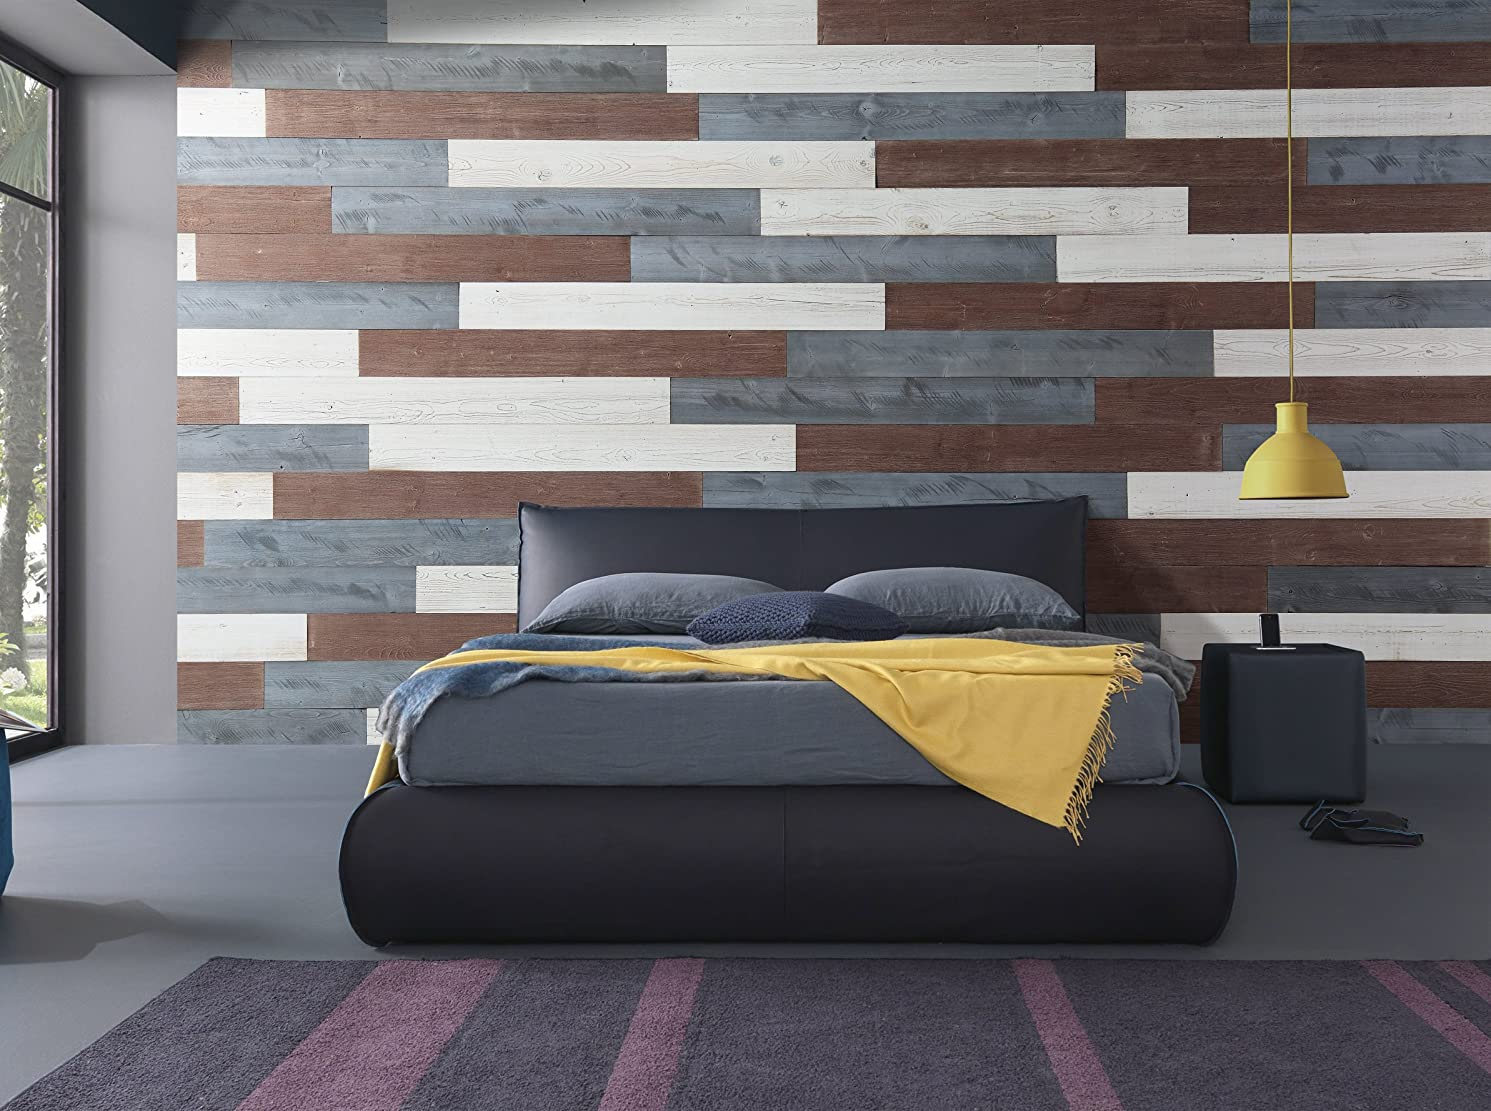 WoodyWalls Peel and Stick Wood Wall Panels, Three Color Combinations, 19.5 sq. ft. per Box, White, Natural Gray, Old Brown